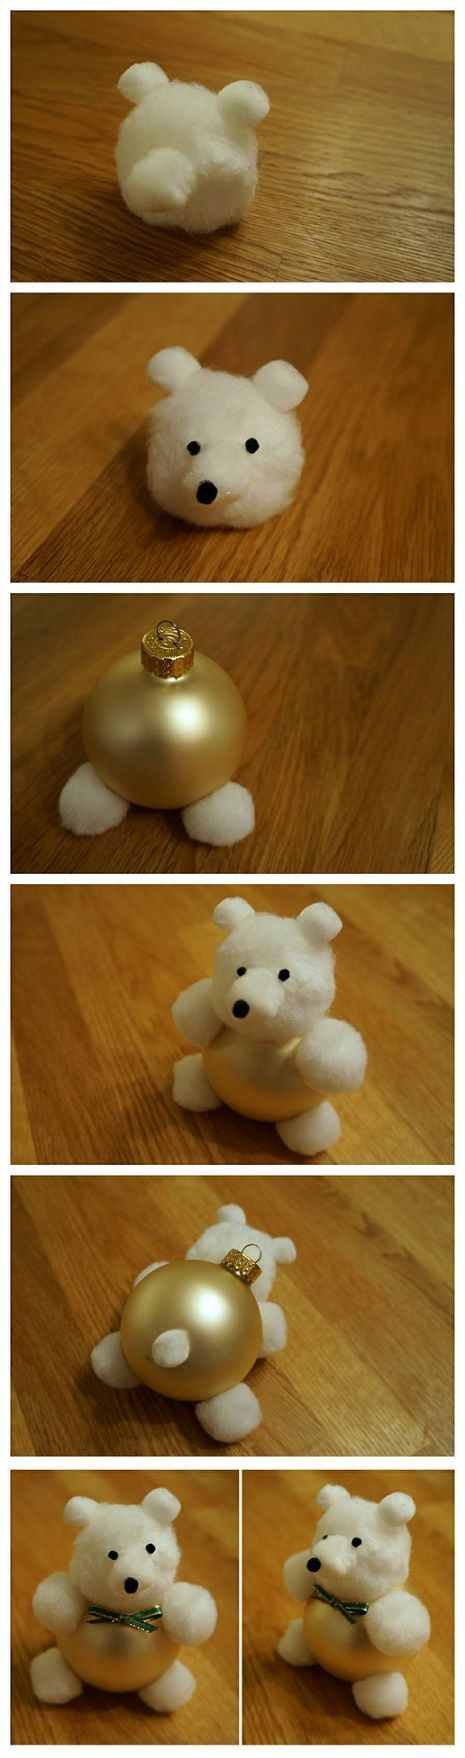 ornaments for the Christmas tree10